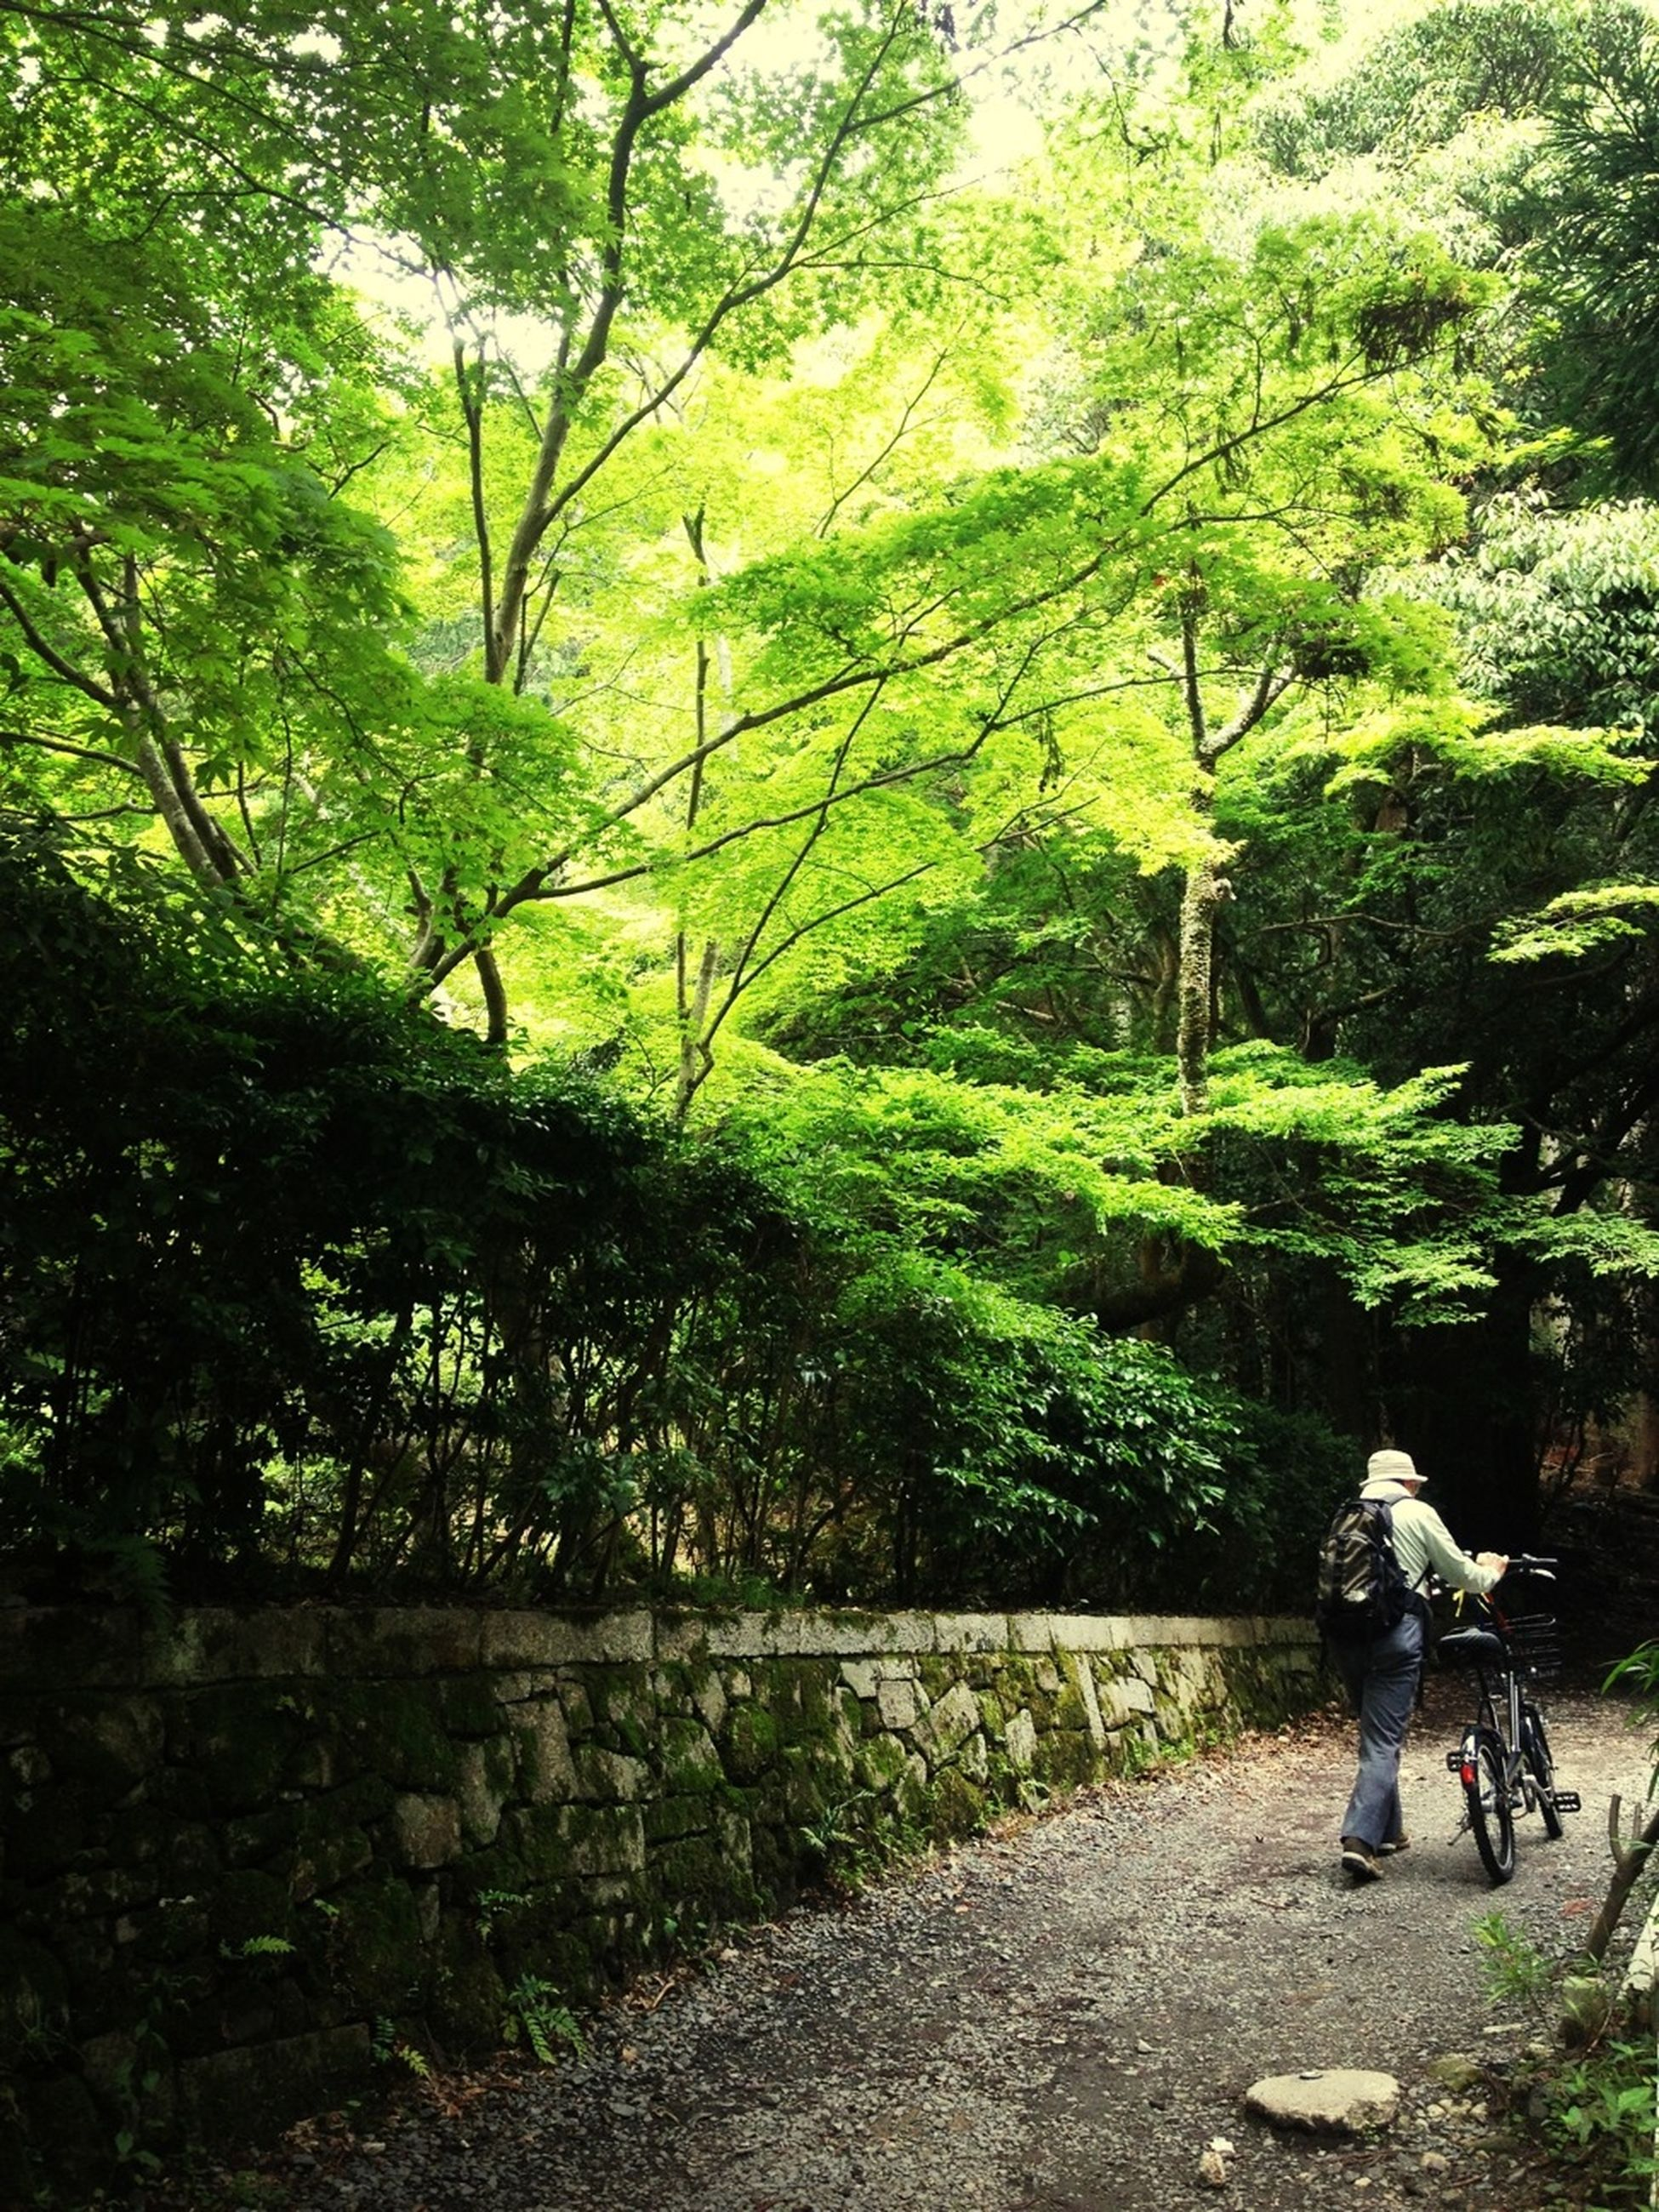 tree, lifestyles, leisure activity, full length, men, rear view, casual clothing, growth, bicycle, forest, person, nature, walking, tranquility, riding, standing, day